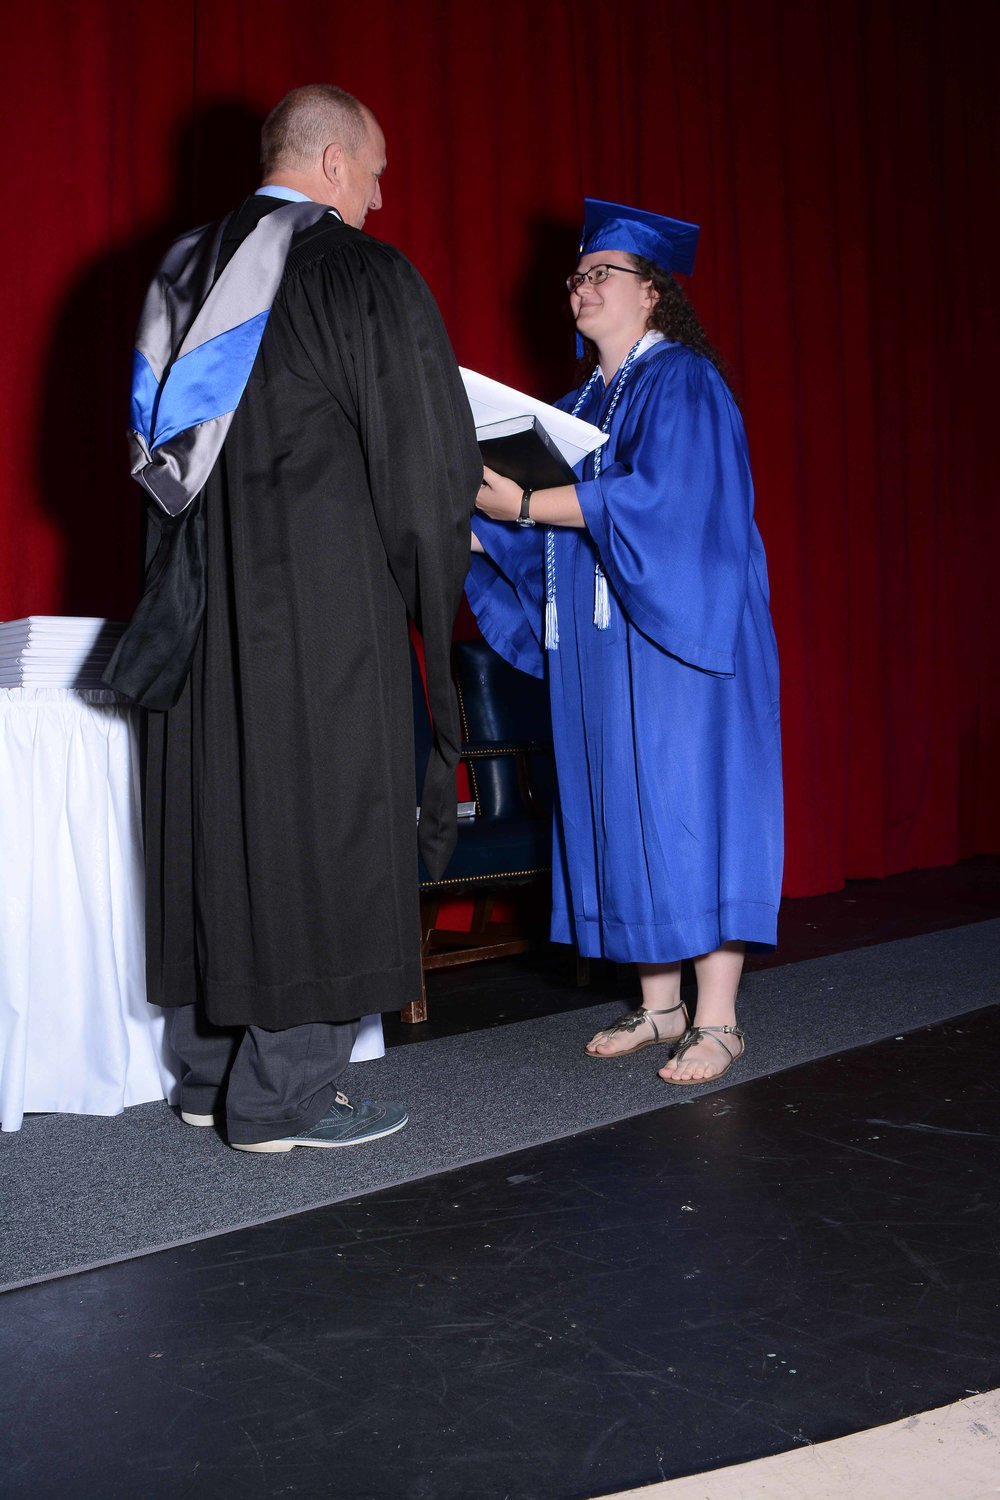 May14 Commencement36.jpg